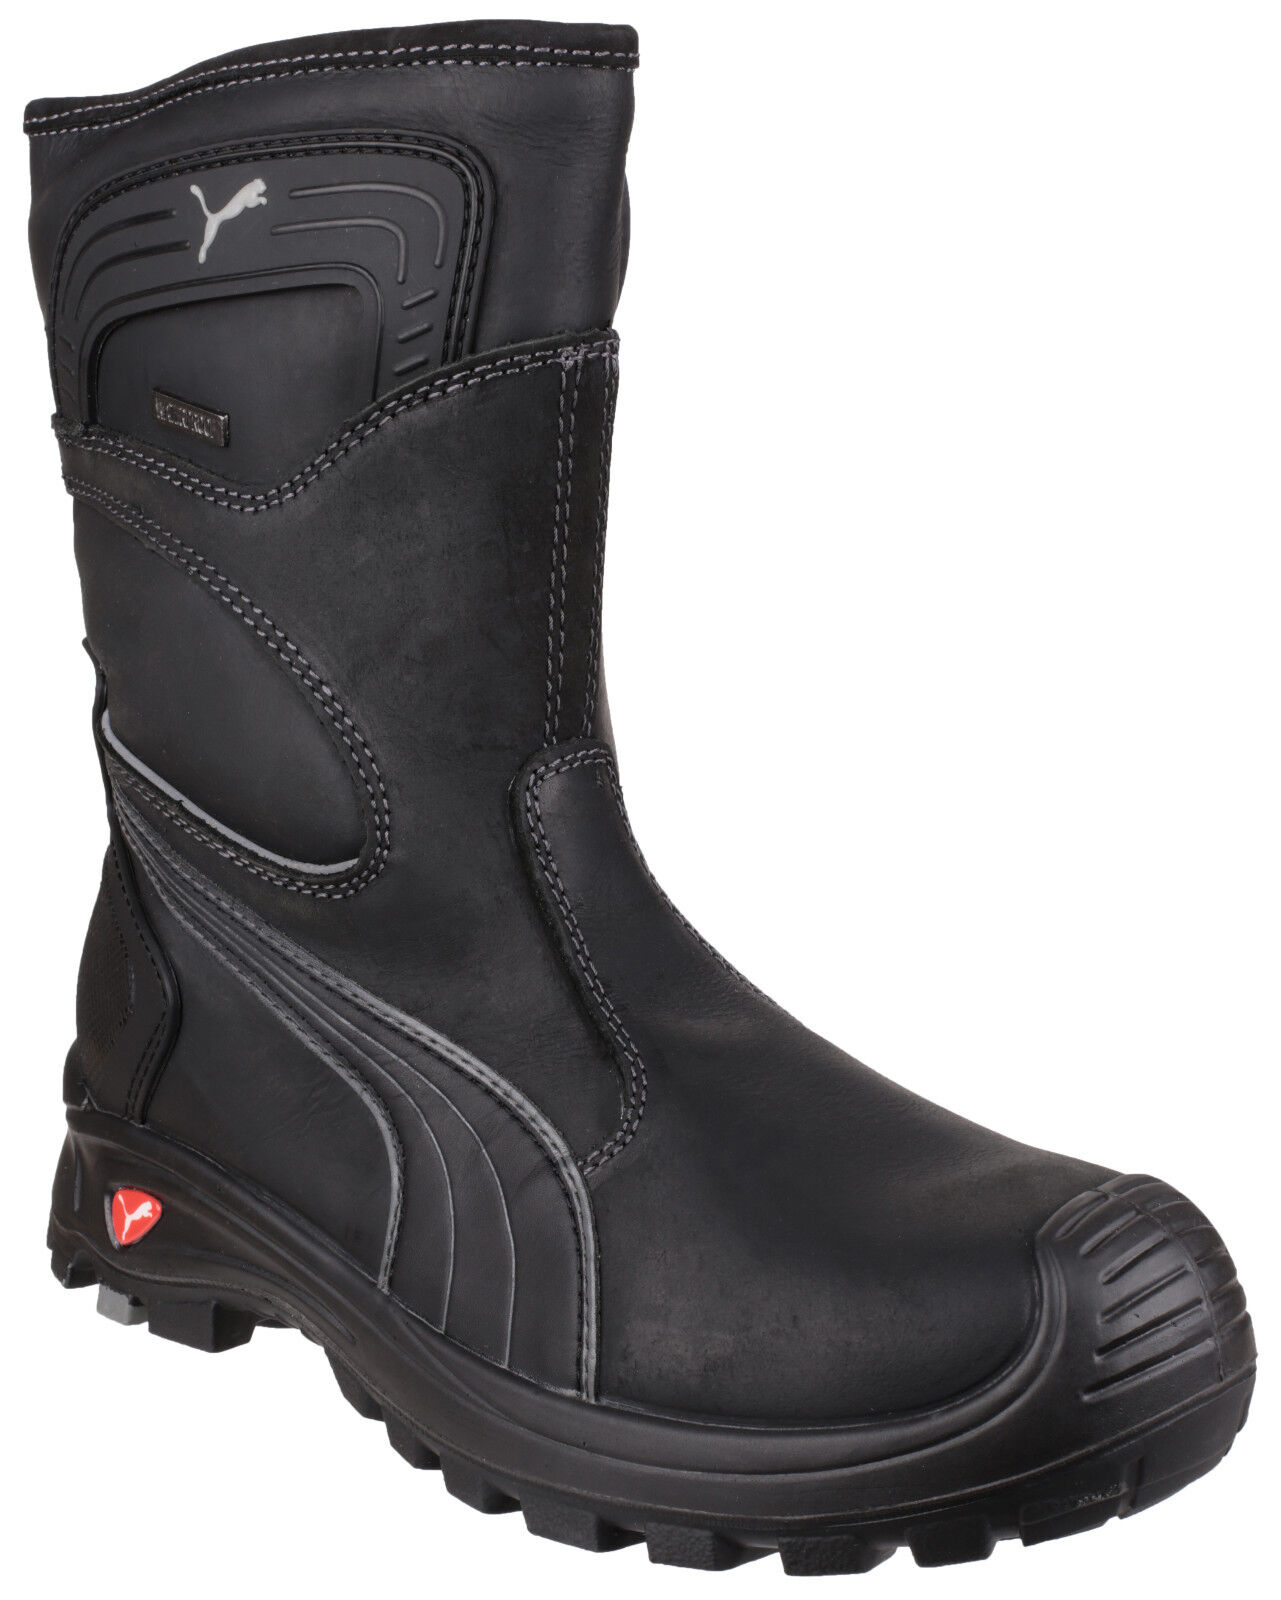 Puma Rigger Safety Mens Composite Toe Cap Industrial Work Boots shoes UK6-13